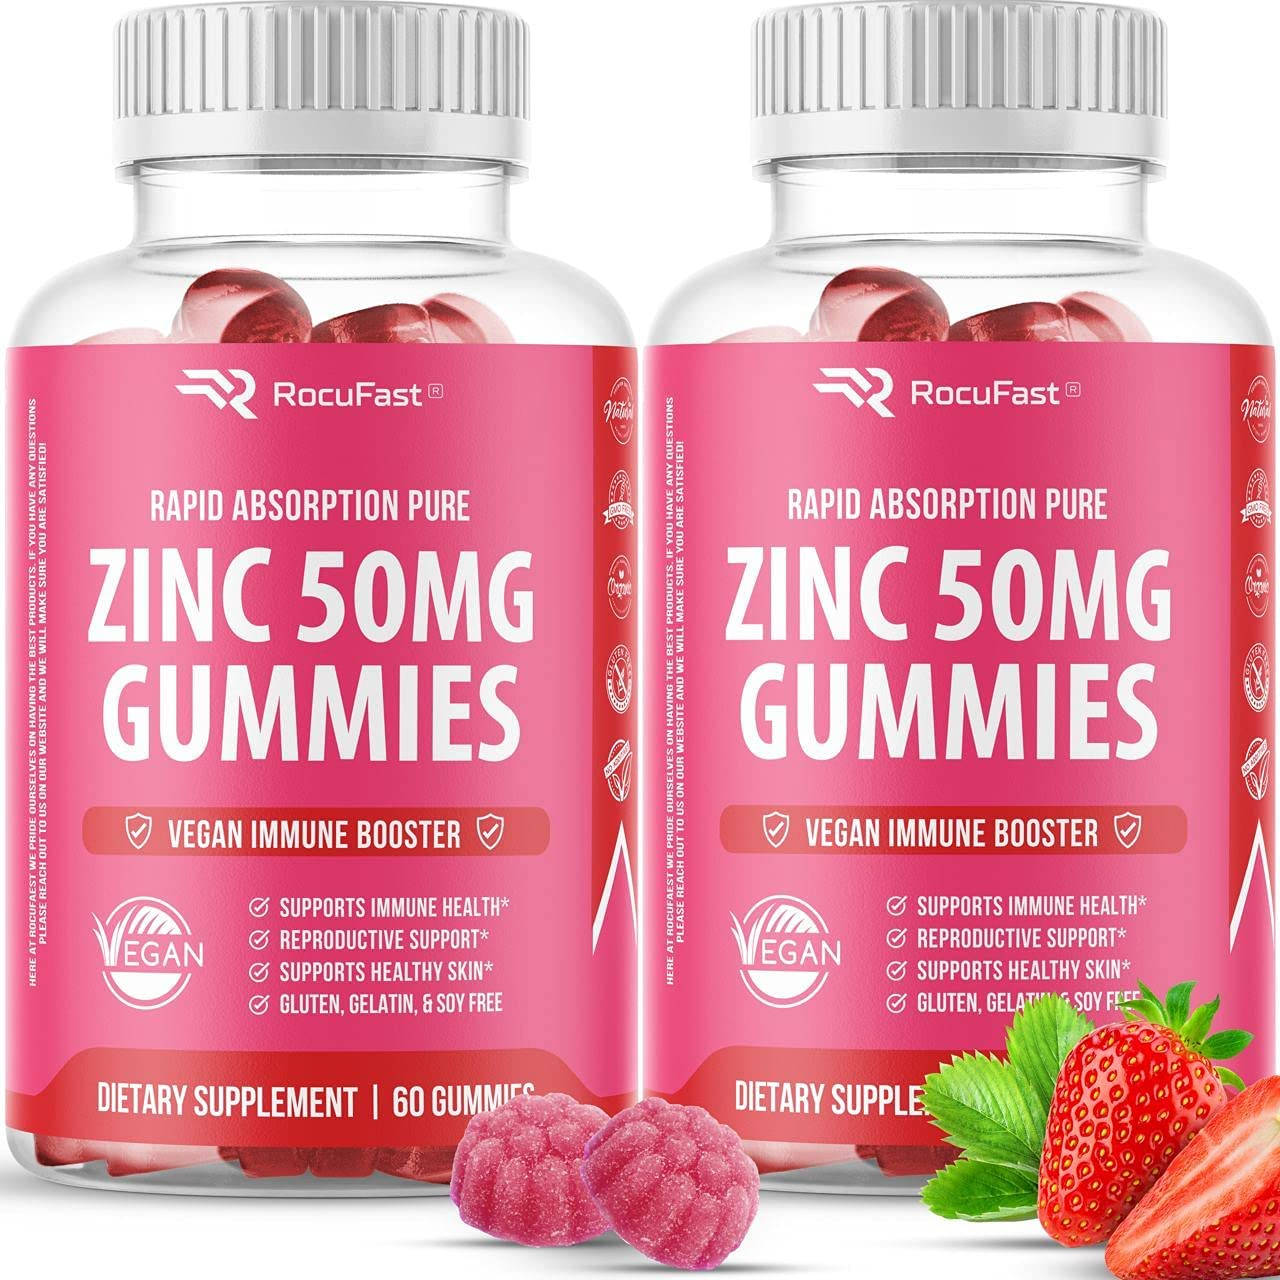 Zinc is a groundbreaking essential mineral that is essential for wellness and a healthy lifestyle?